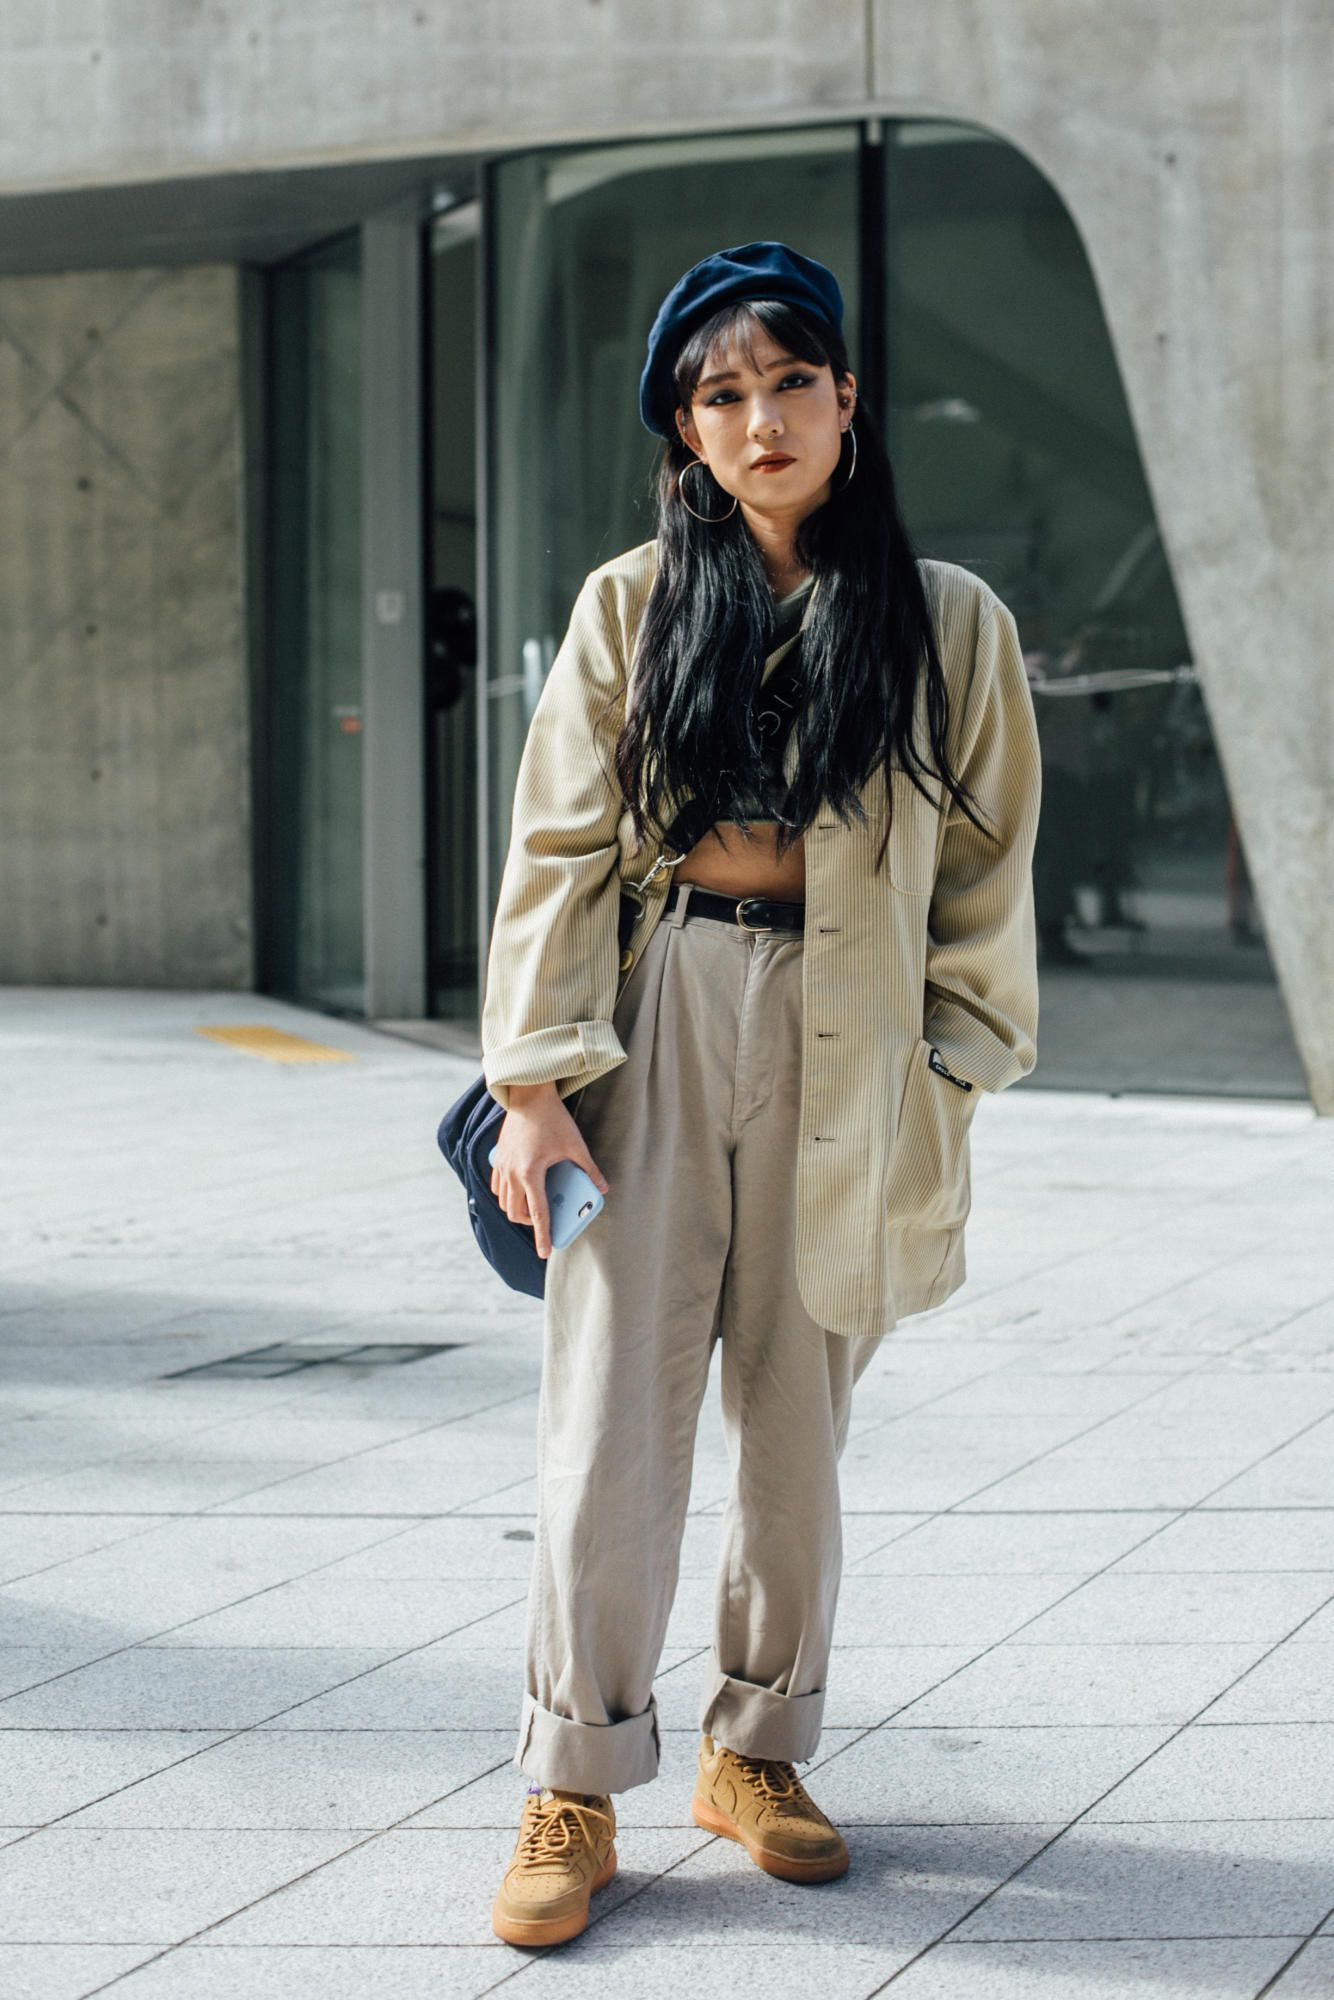 Matching Outfits Were The Street Style Uniform At Seoul Fashion Week